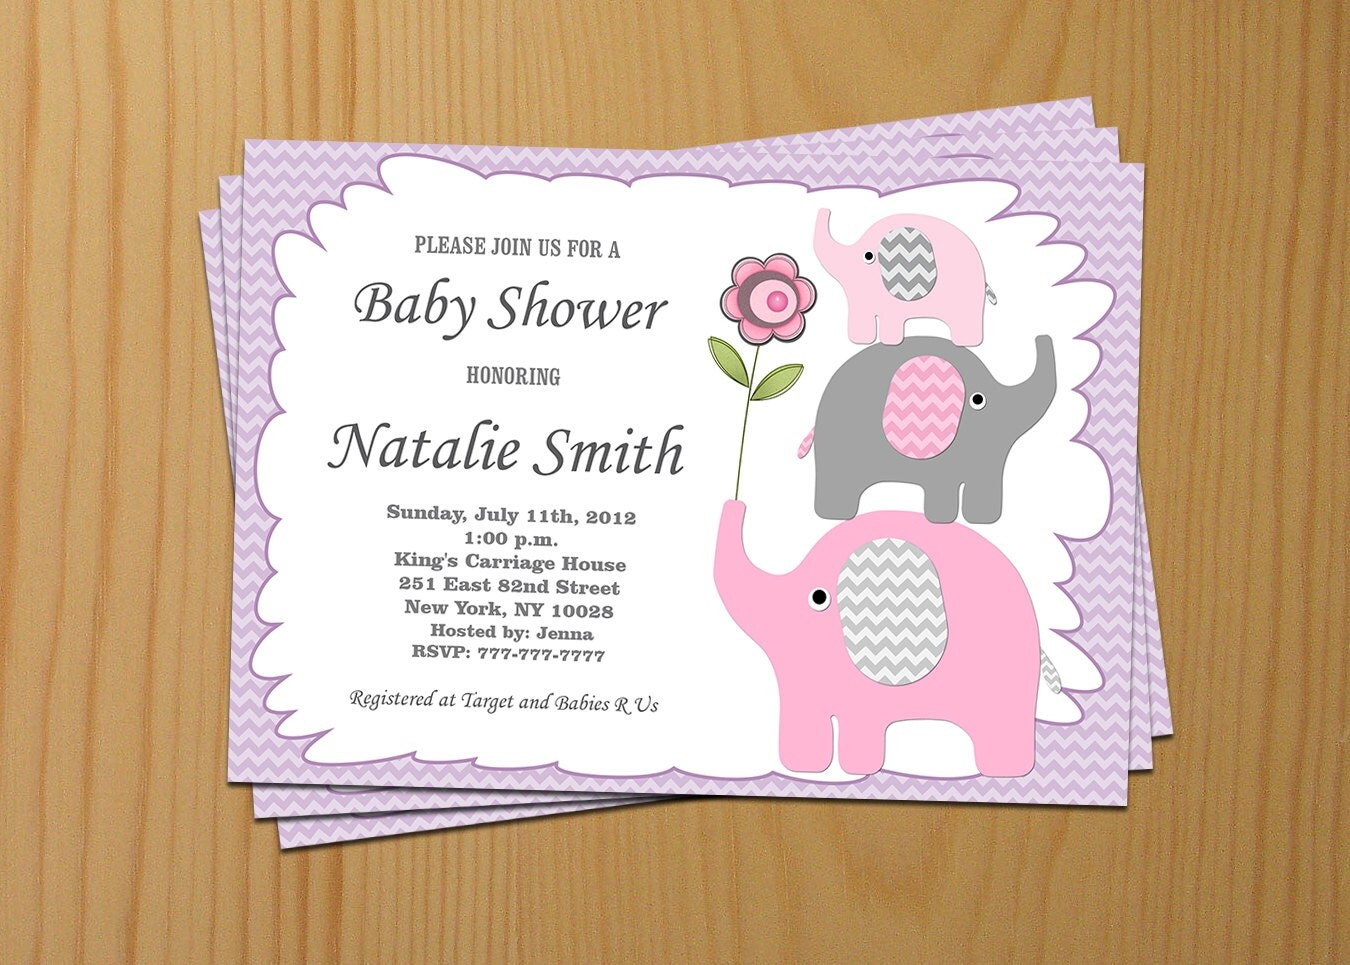 Baby Shower Picture Images ~ Baby shower invitation girl elephant